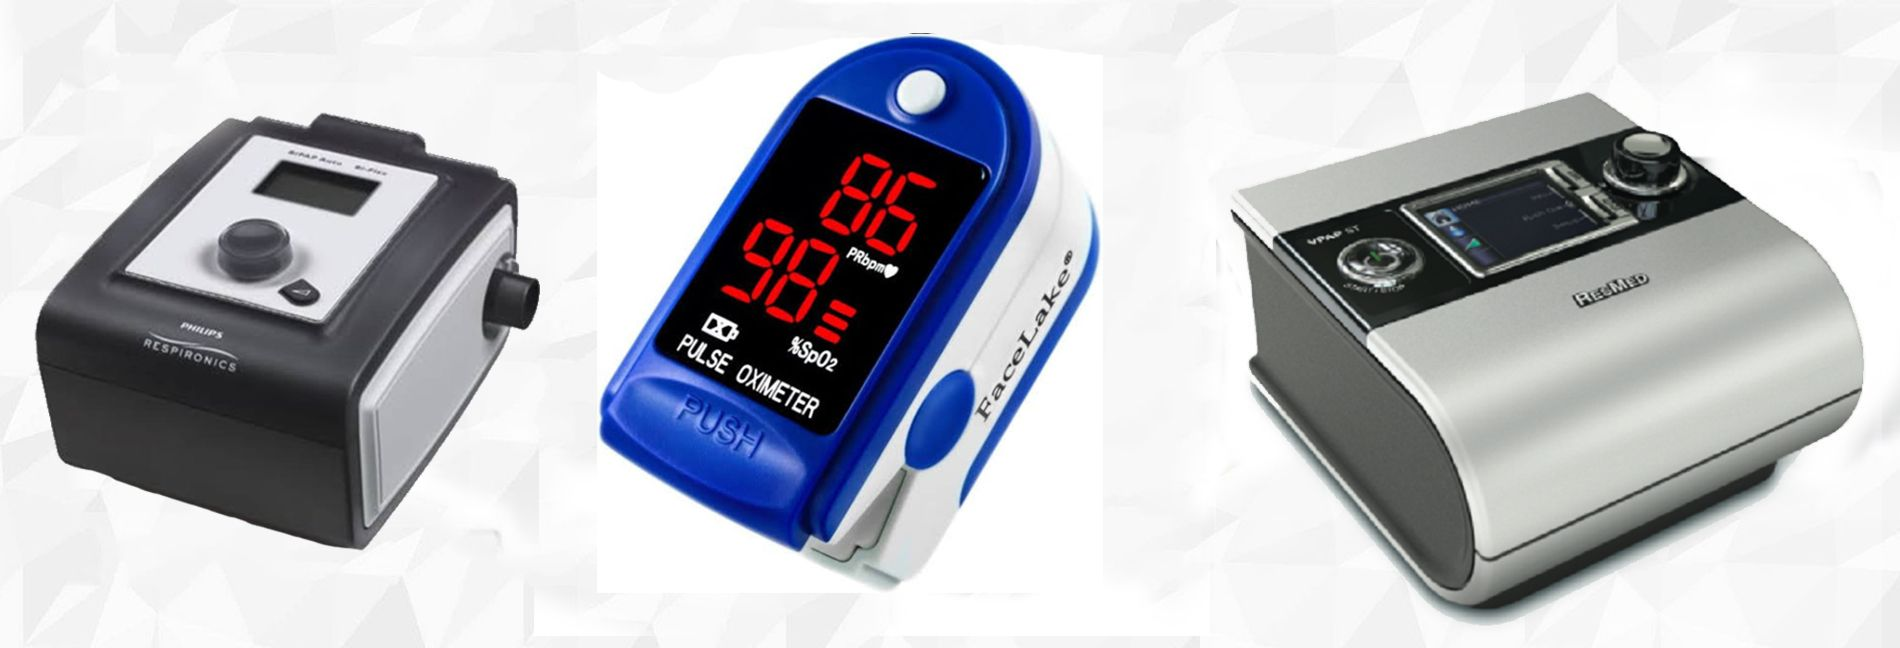 Choicemed Pulse Oximeter, BMC Bipap